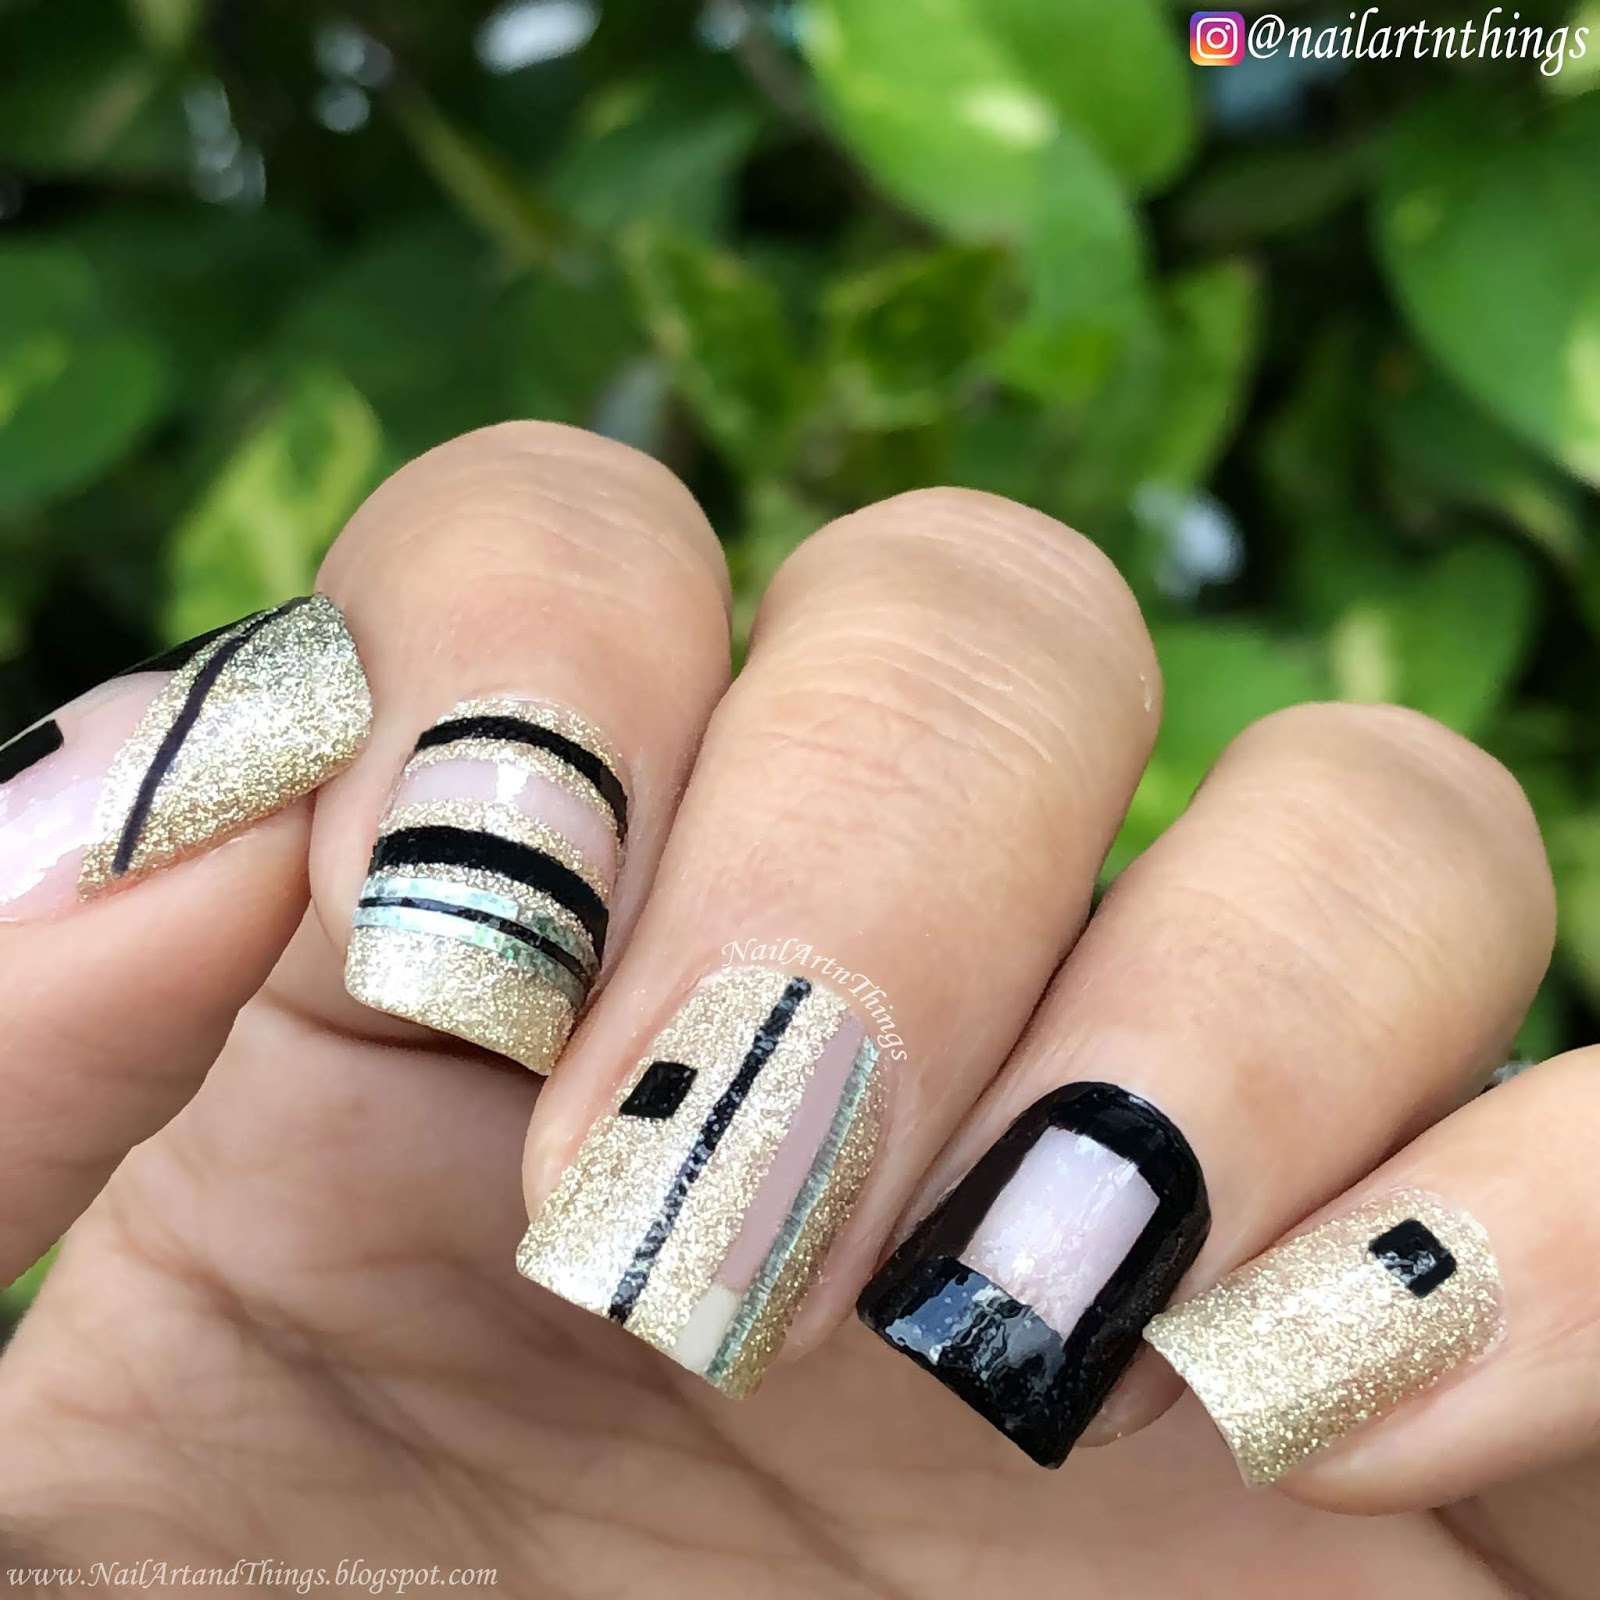 NailArt and Things: Negative Space Nail Art